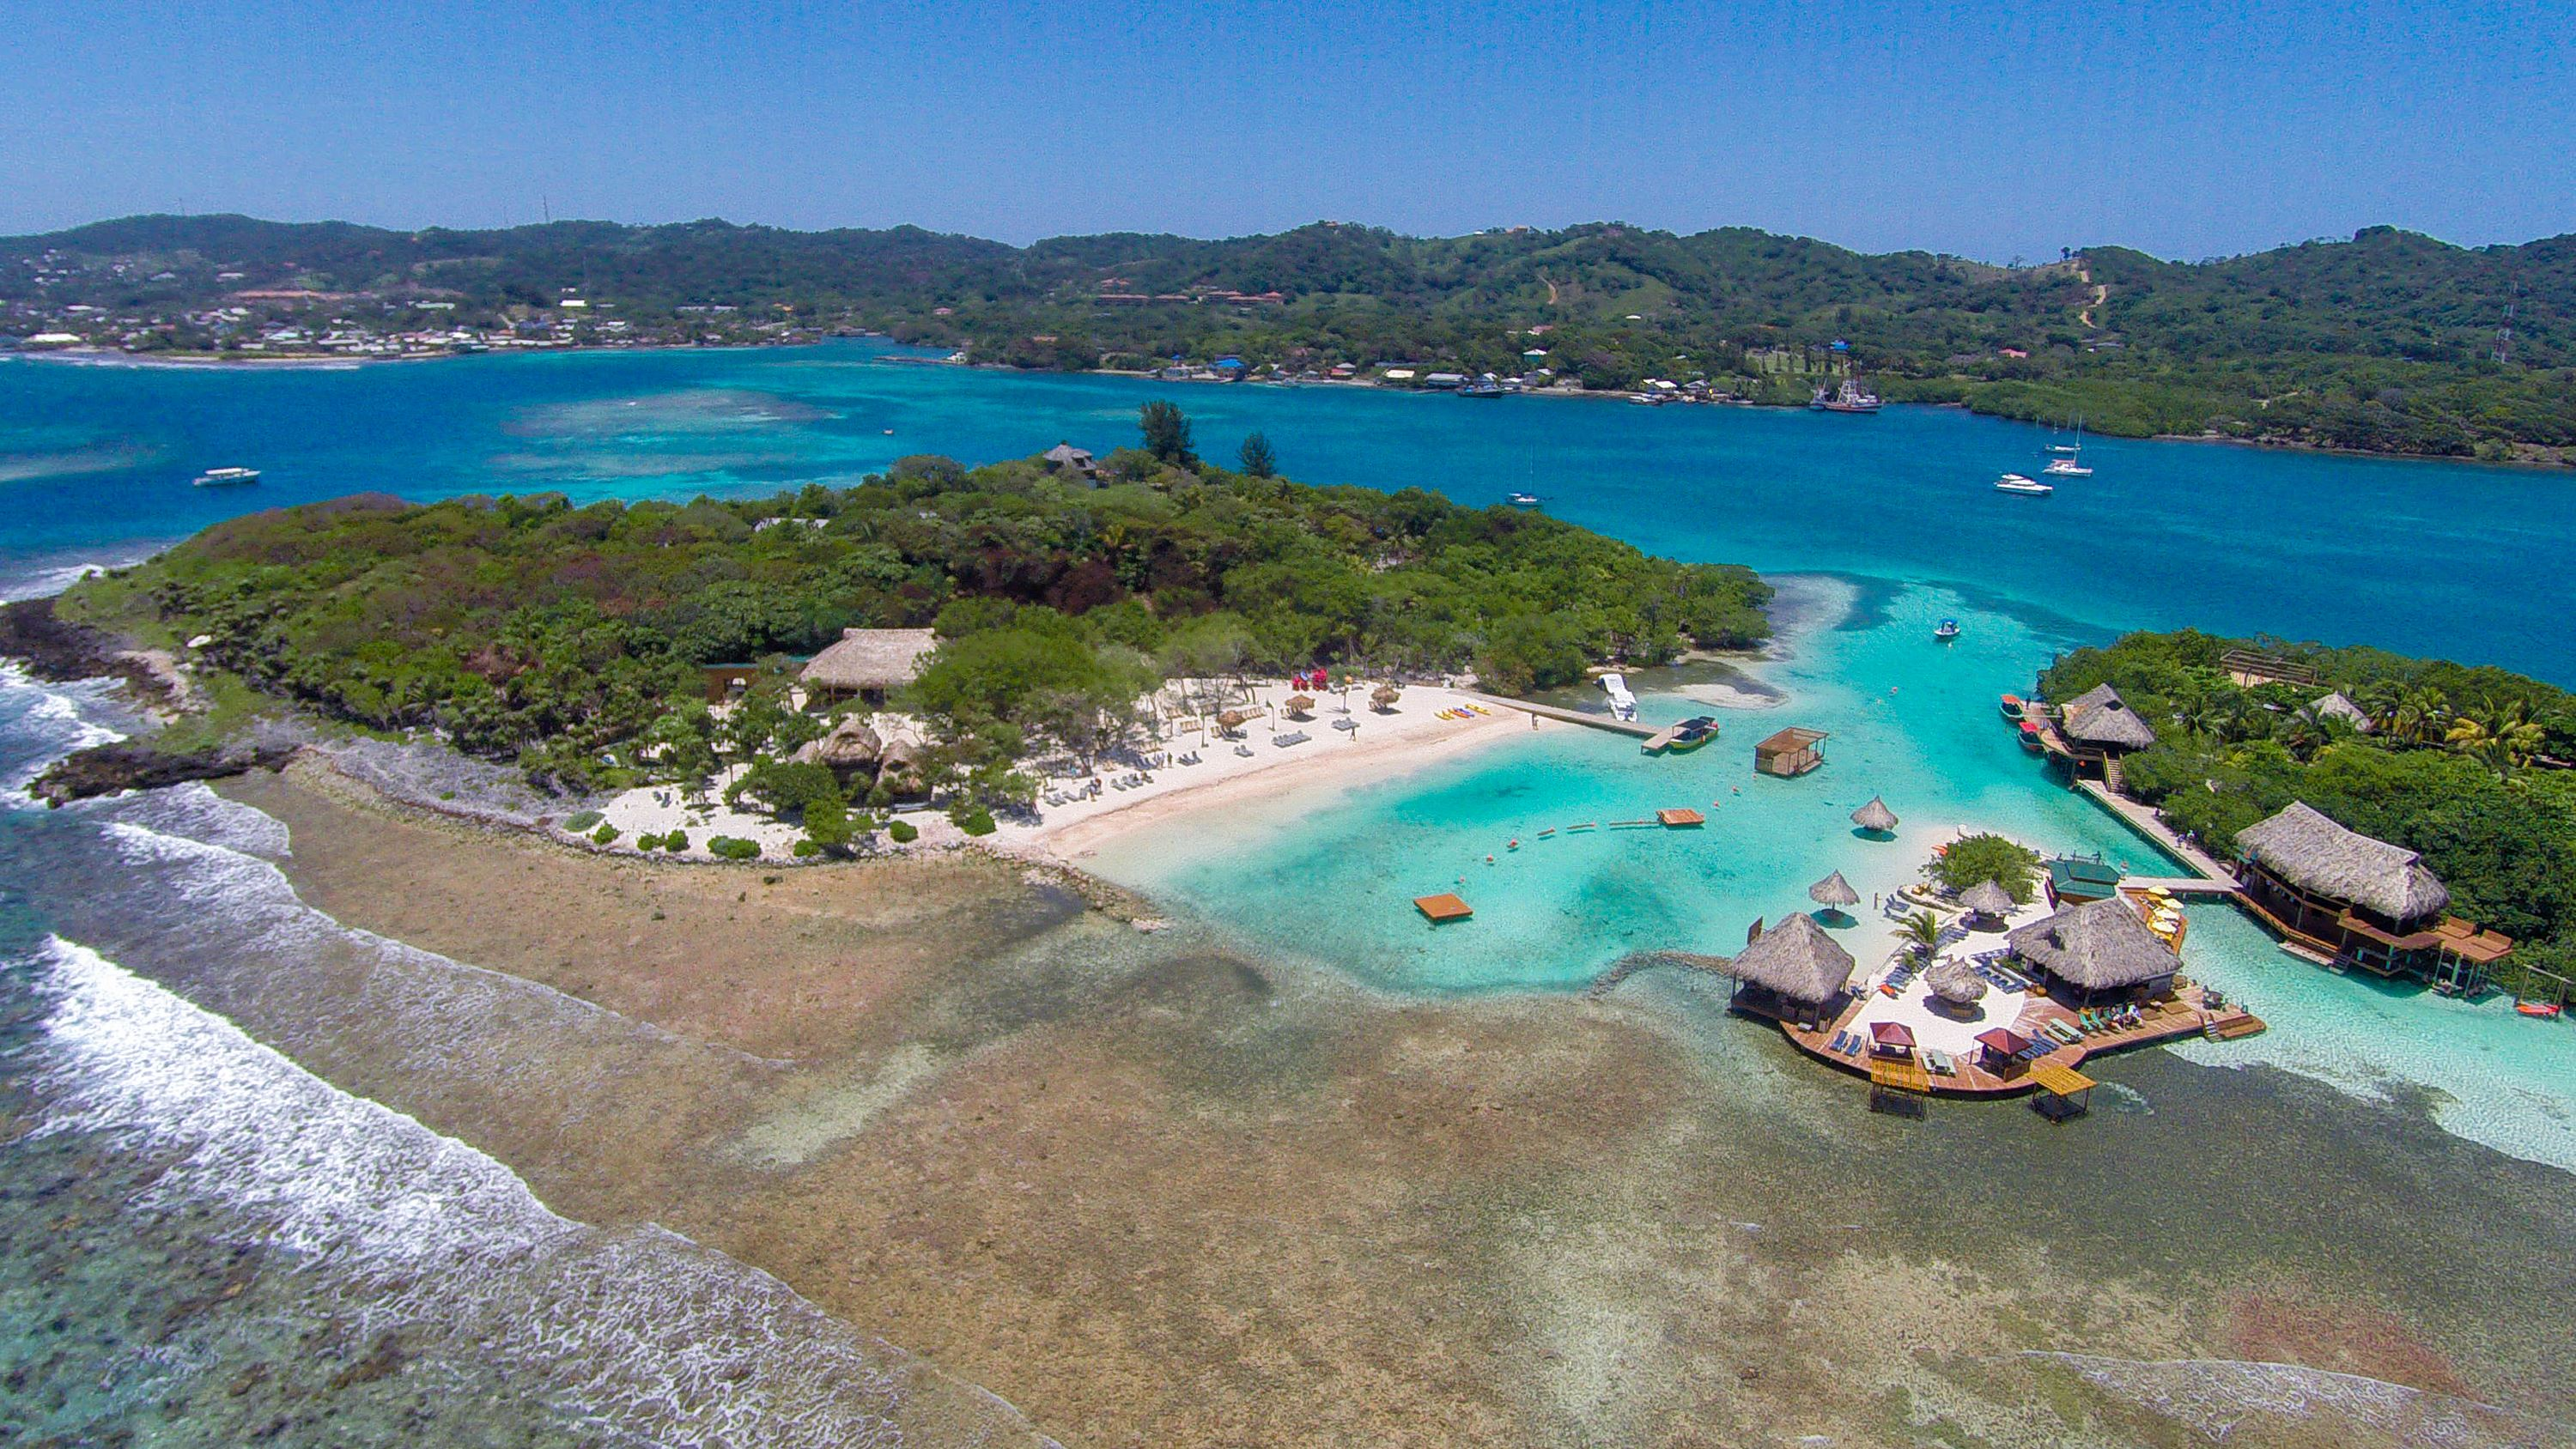 Roatan for 7 days and 6 nights.